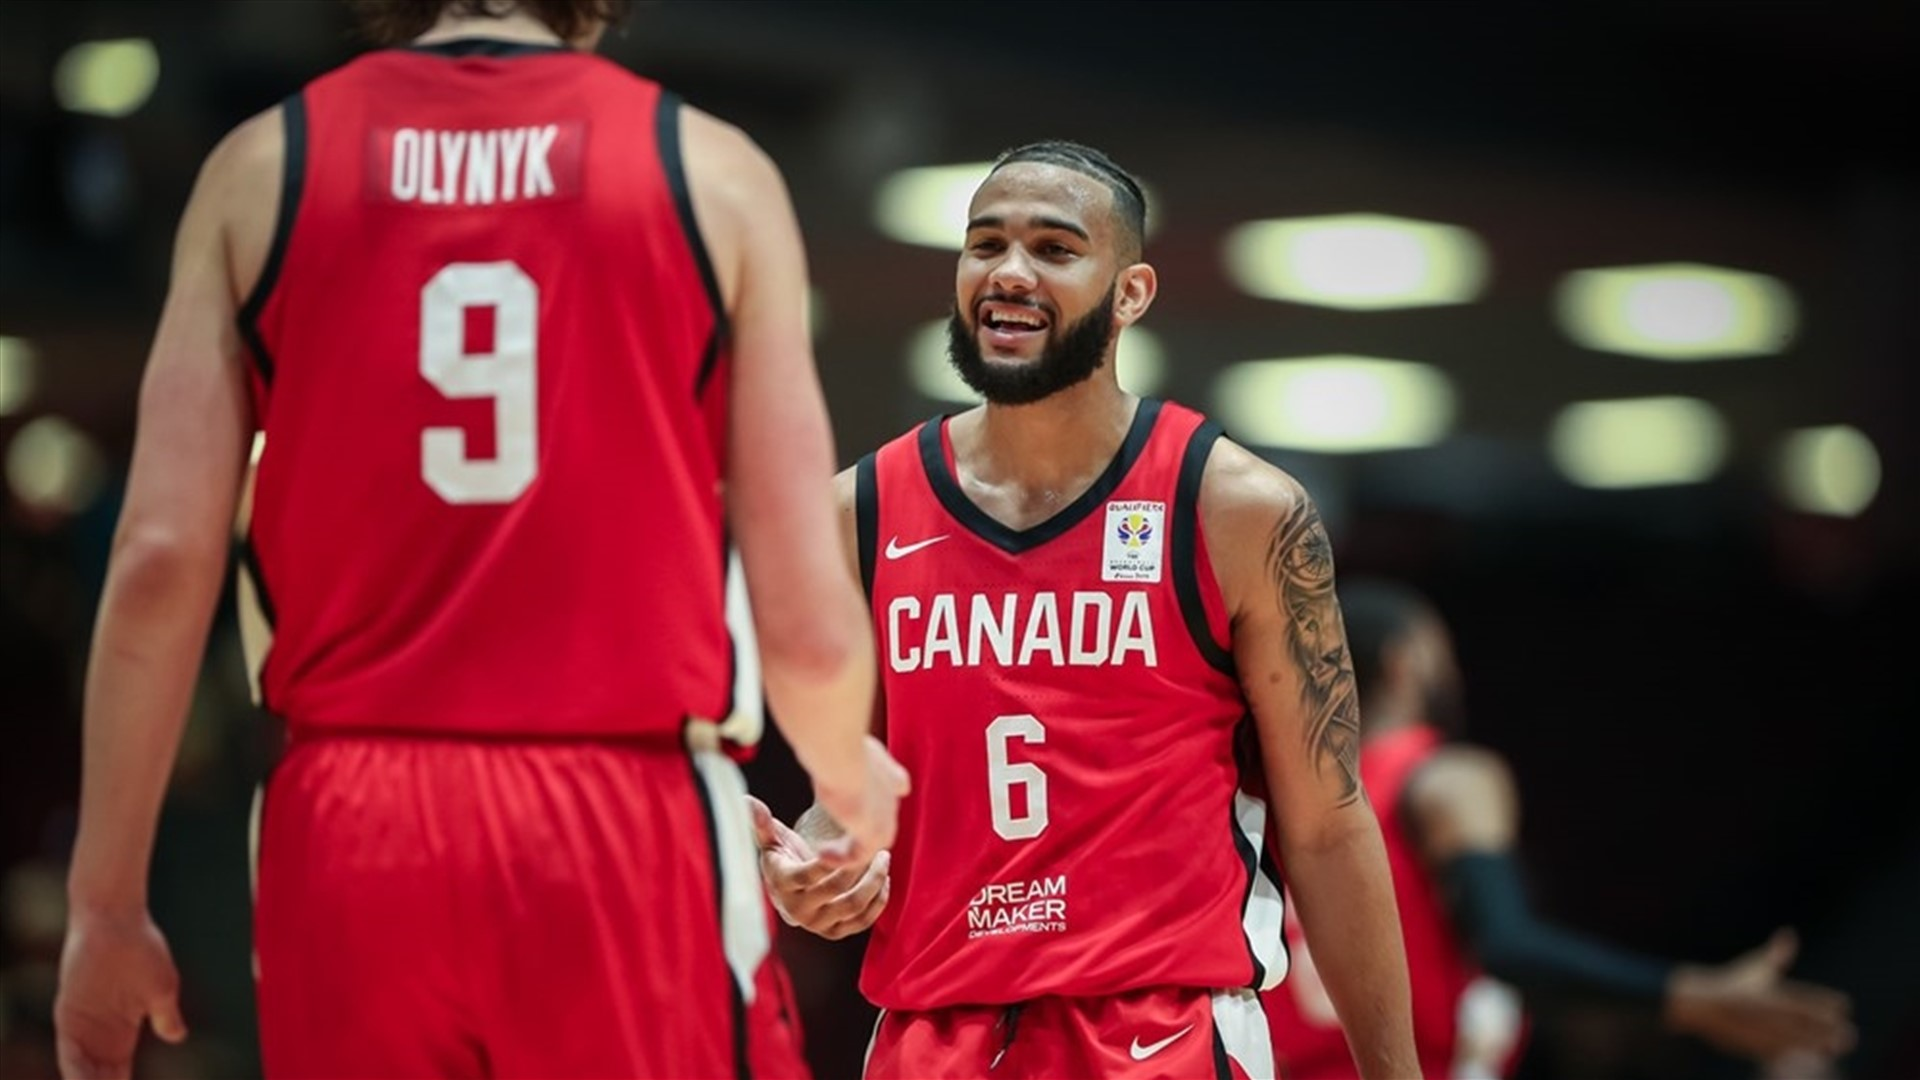 FIBA Basketball World Cup 2019: Take a deep breath, Canada